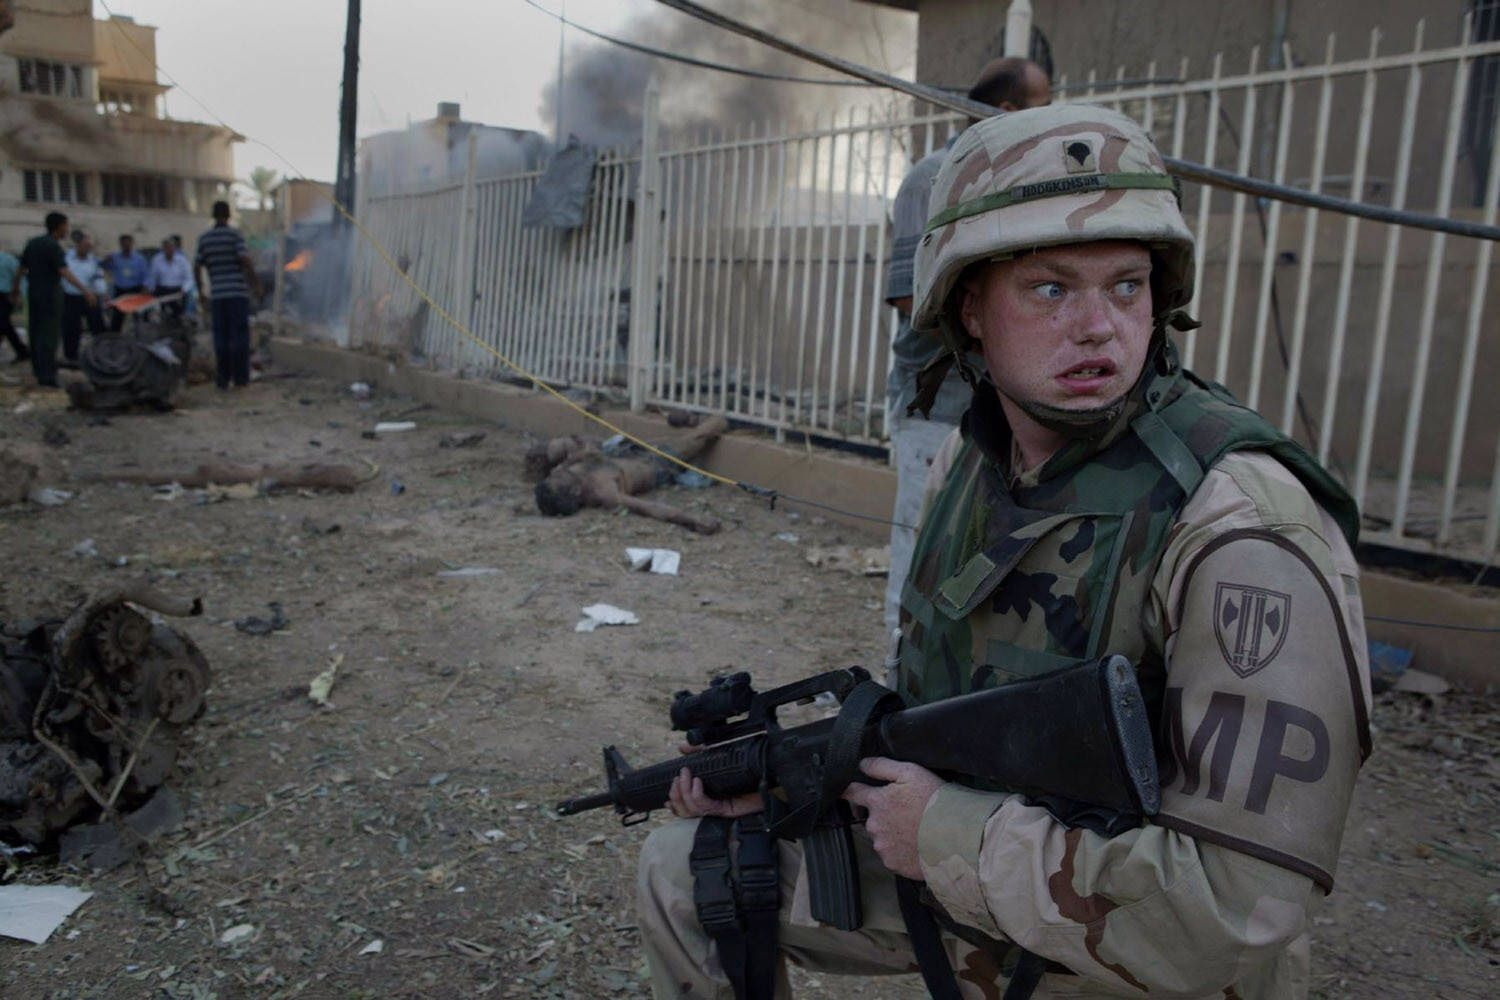 iraq war 2003 essay Iraq war essay examples iraq war the iraq war is also known as the occupation of iraq and it started on 20th march 2003, the war was spearheaded by the united.